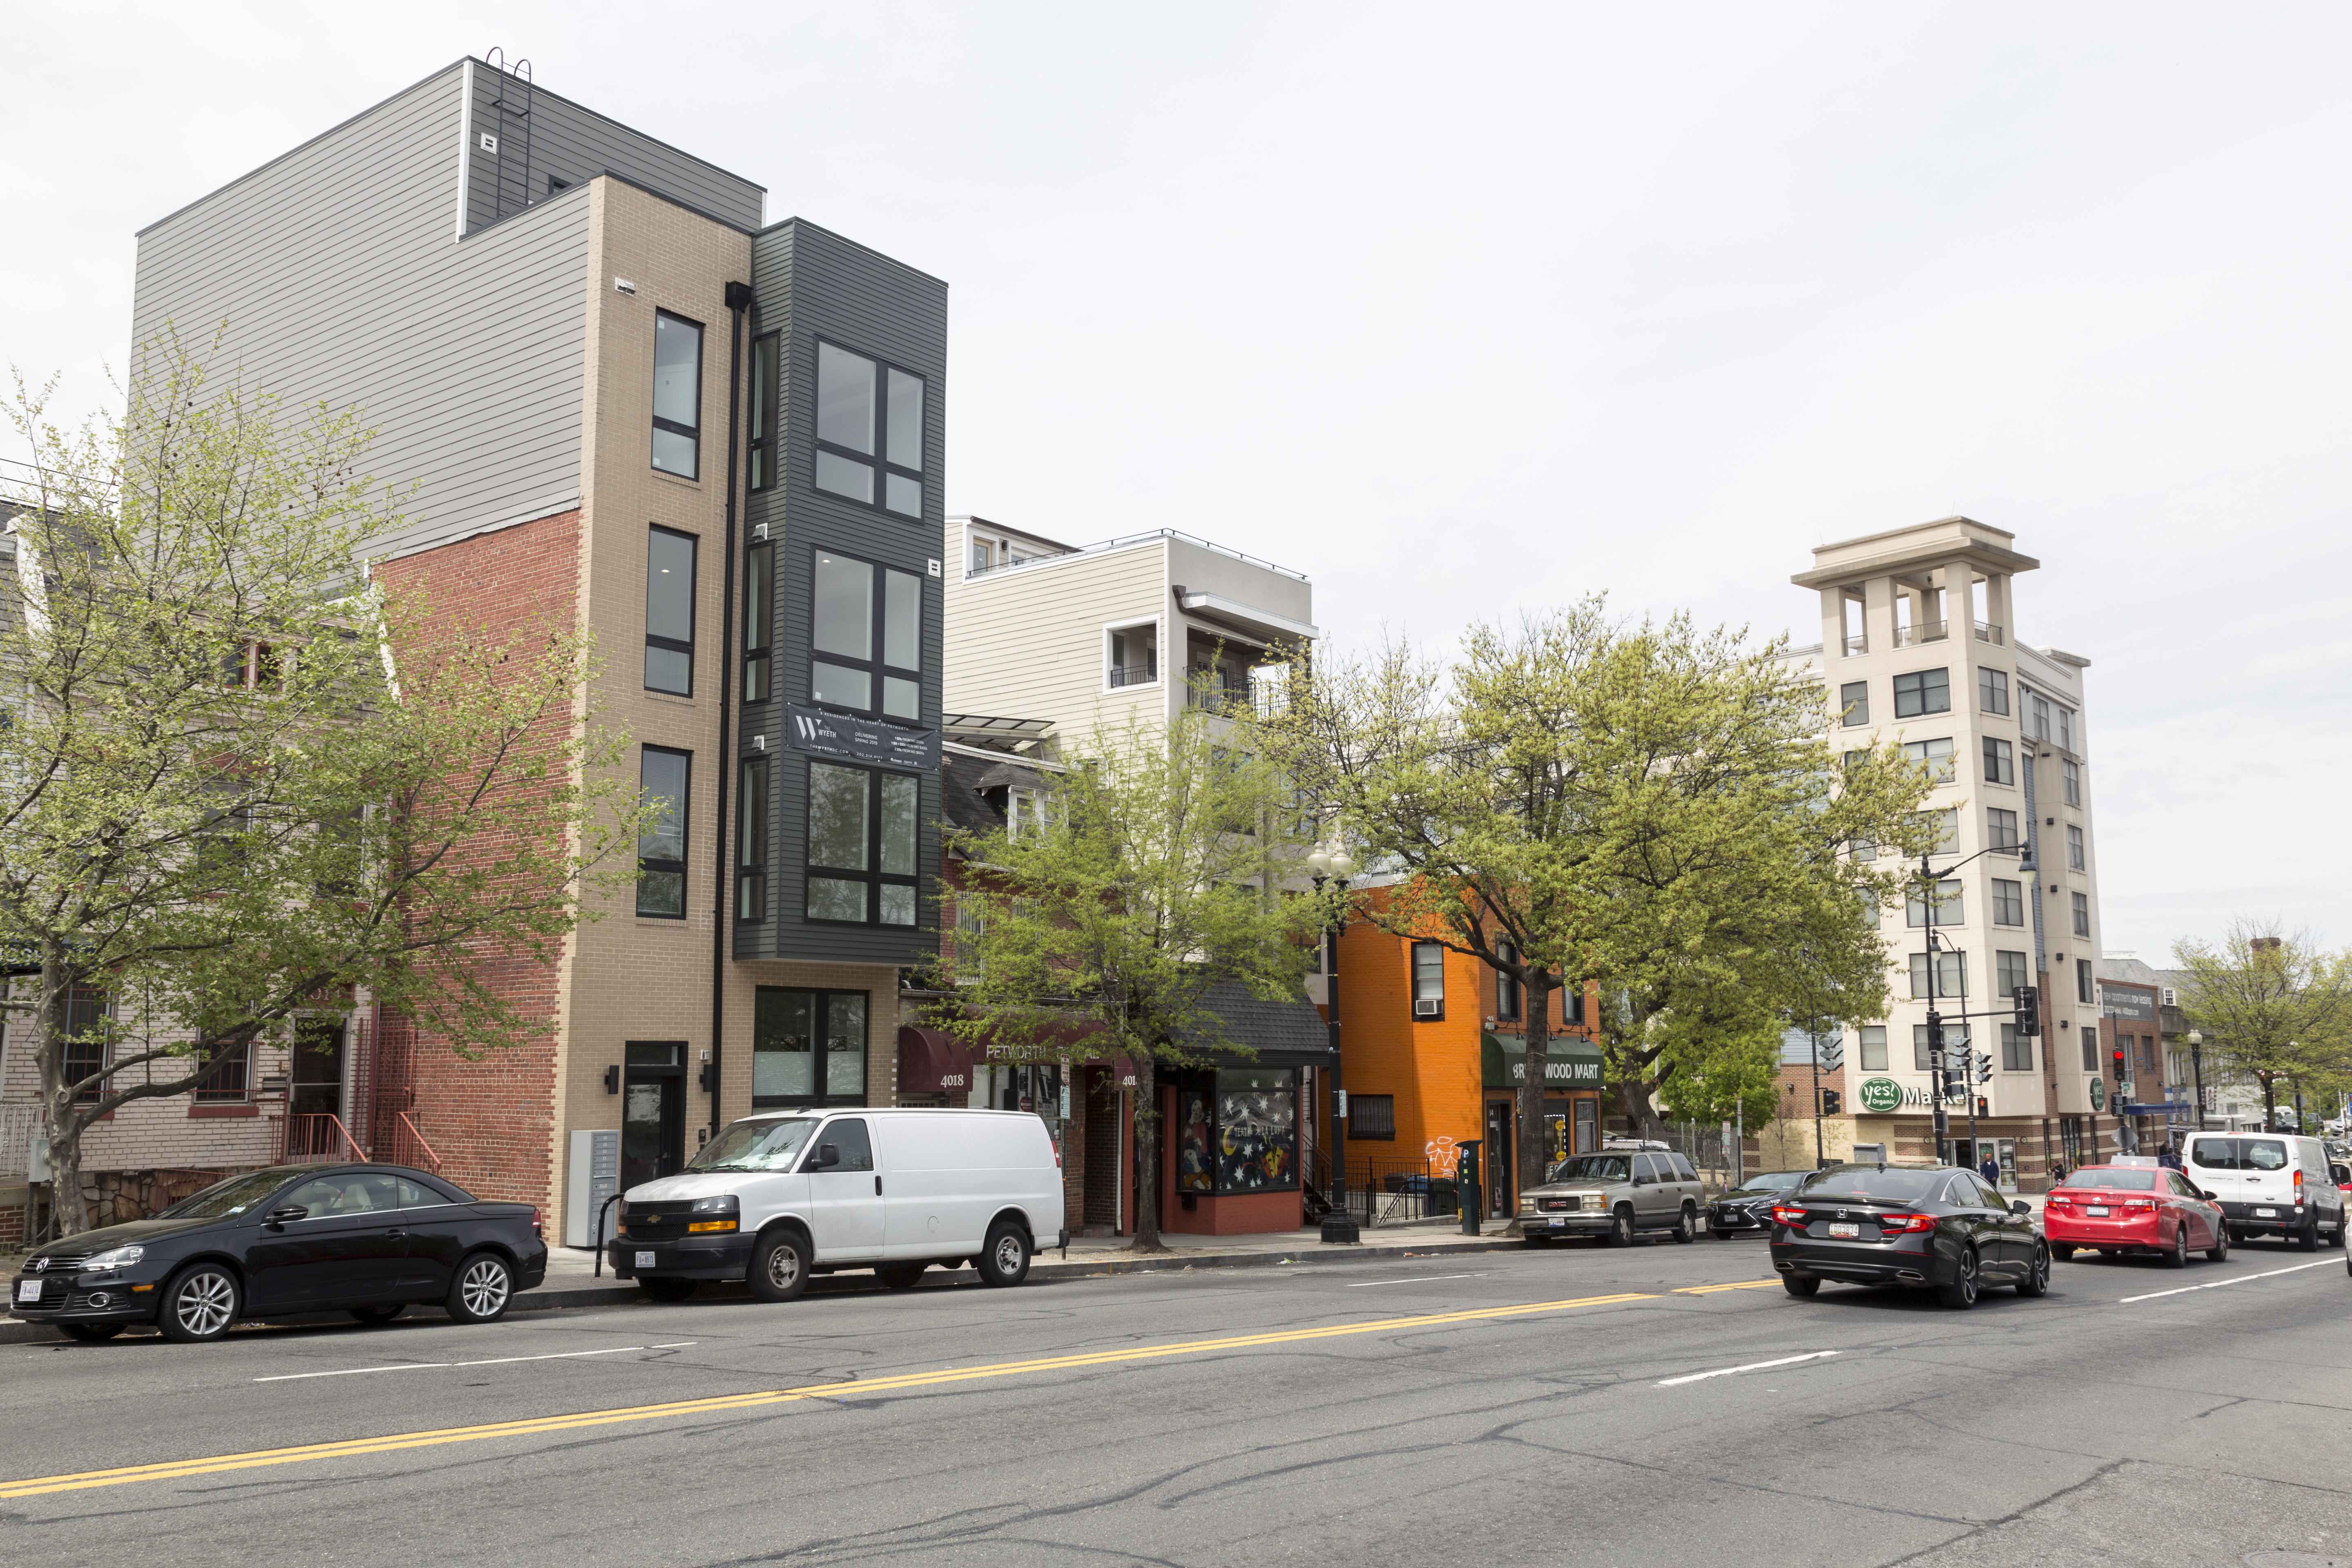 A row of buildings on Georgia Avenue NW, ranging in height from two to six stories, with the street in the foreground. Several cars are parked or are being drive on the street.